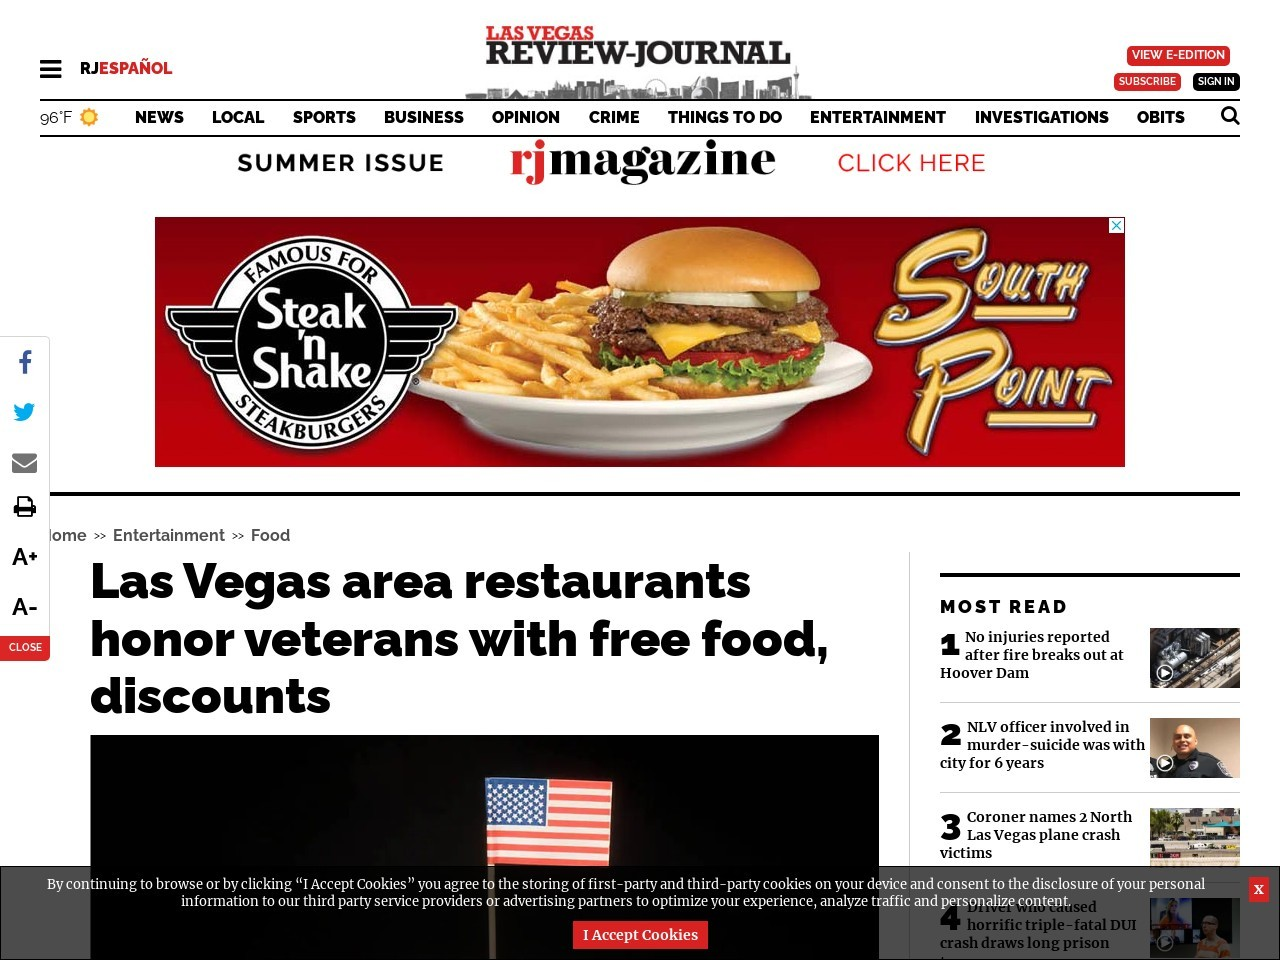 Las Vegas area restaurants honor veterans with free food, discounts